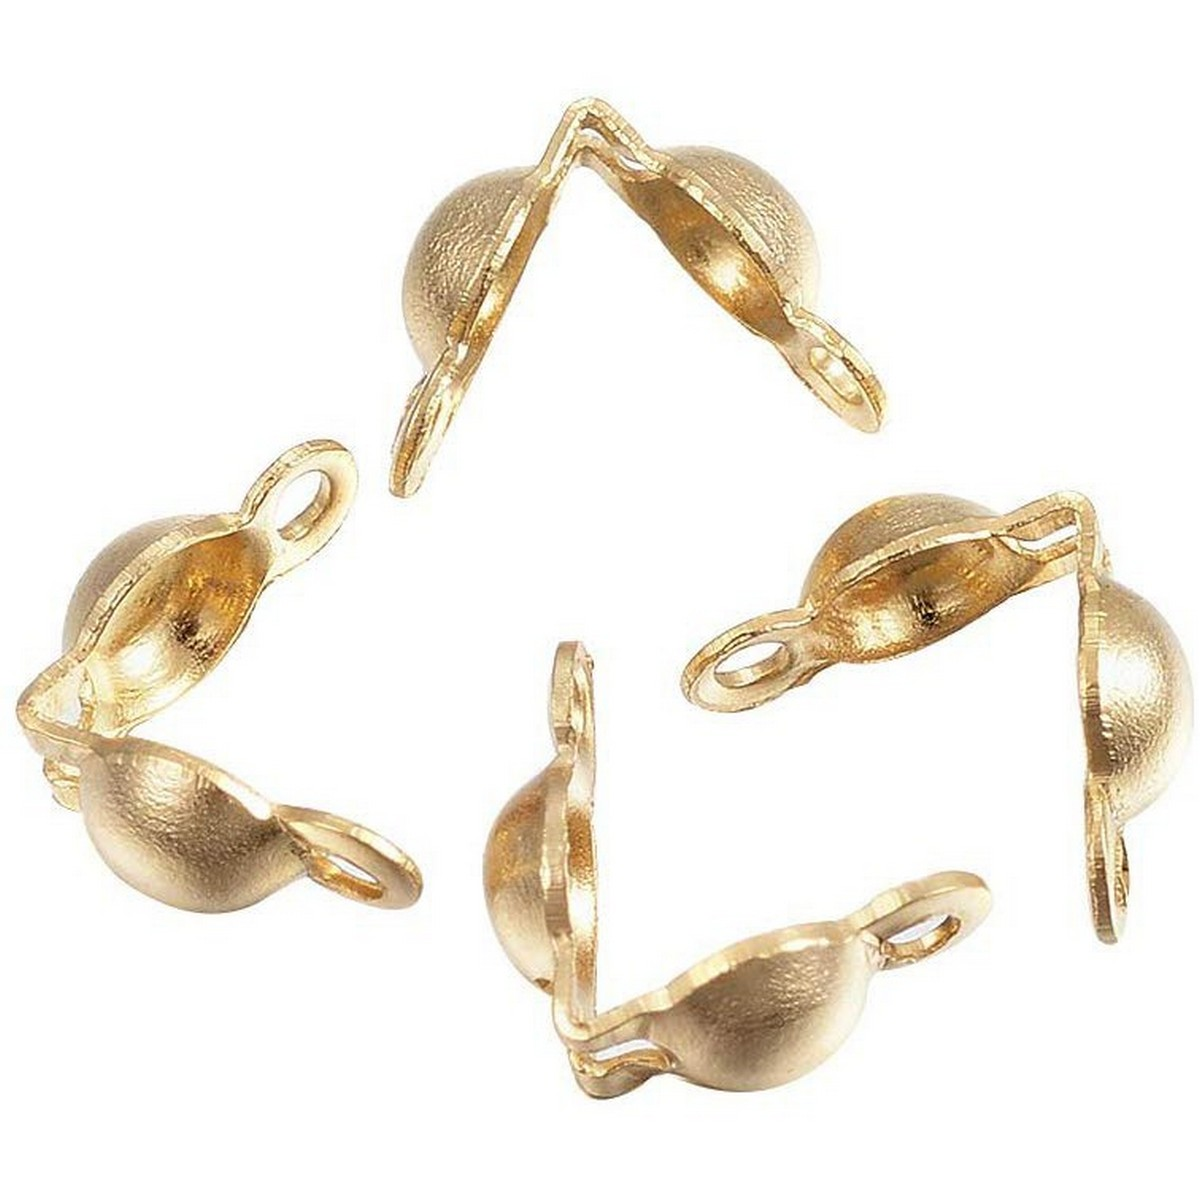 50-60Pcs\Lot Gold Silver Connector Calps Clasps Fitting Dori Lock, Chain Lock Connector Clasp Fitting 4*7mm Ball Chain Calotte End Crimps Beads Connector Components For DIY Findings Making Supplies